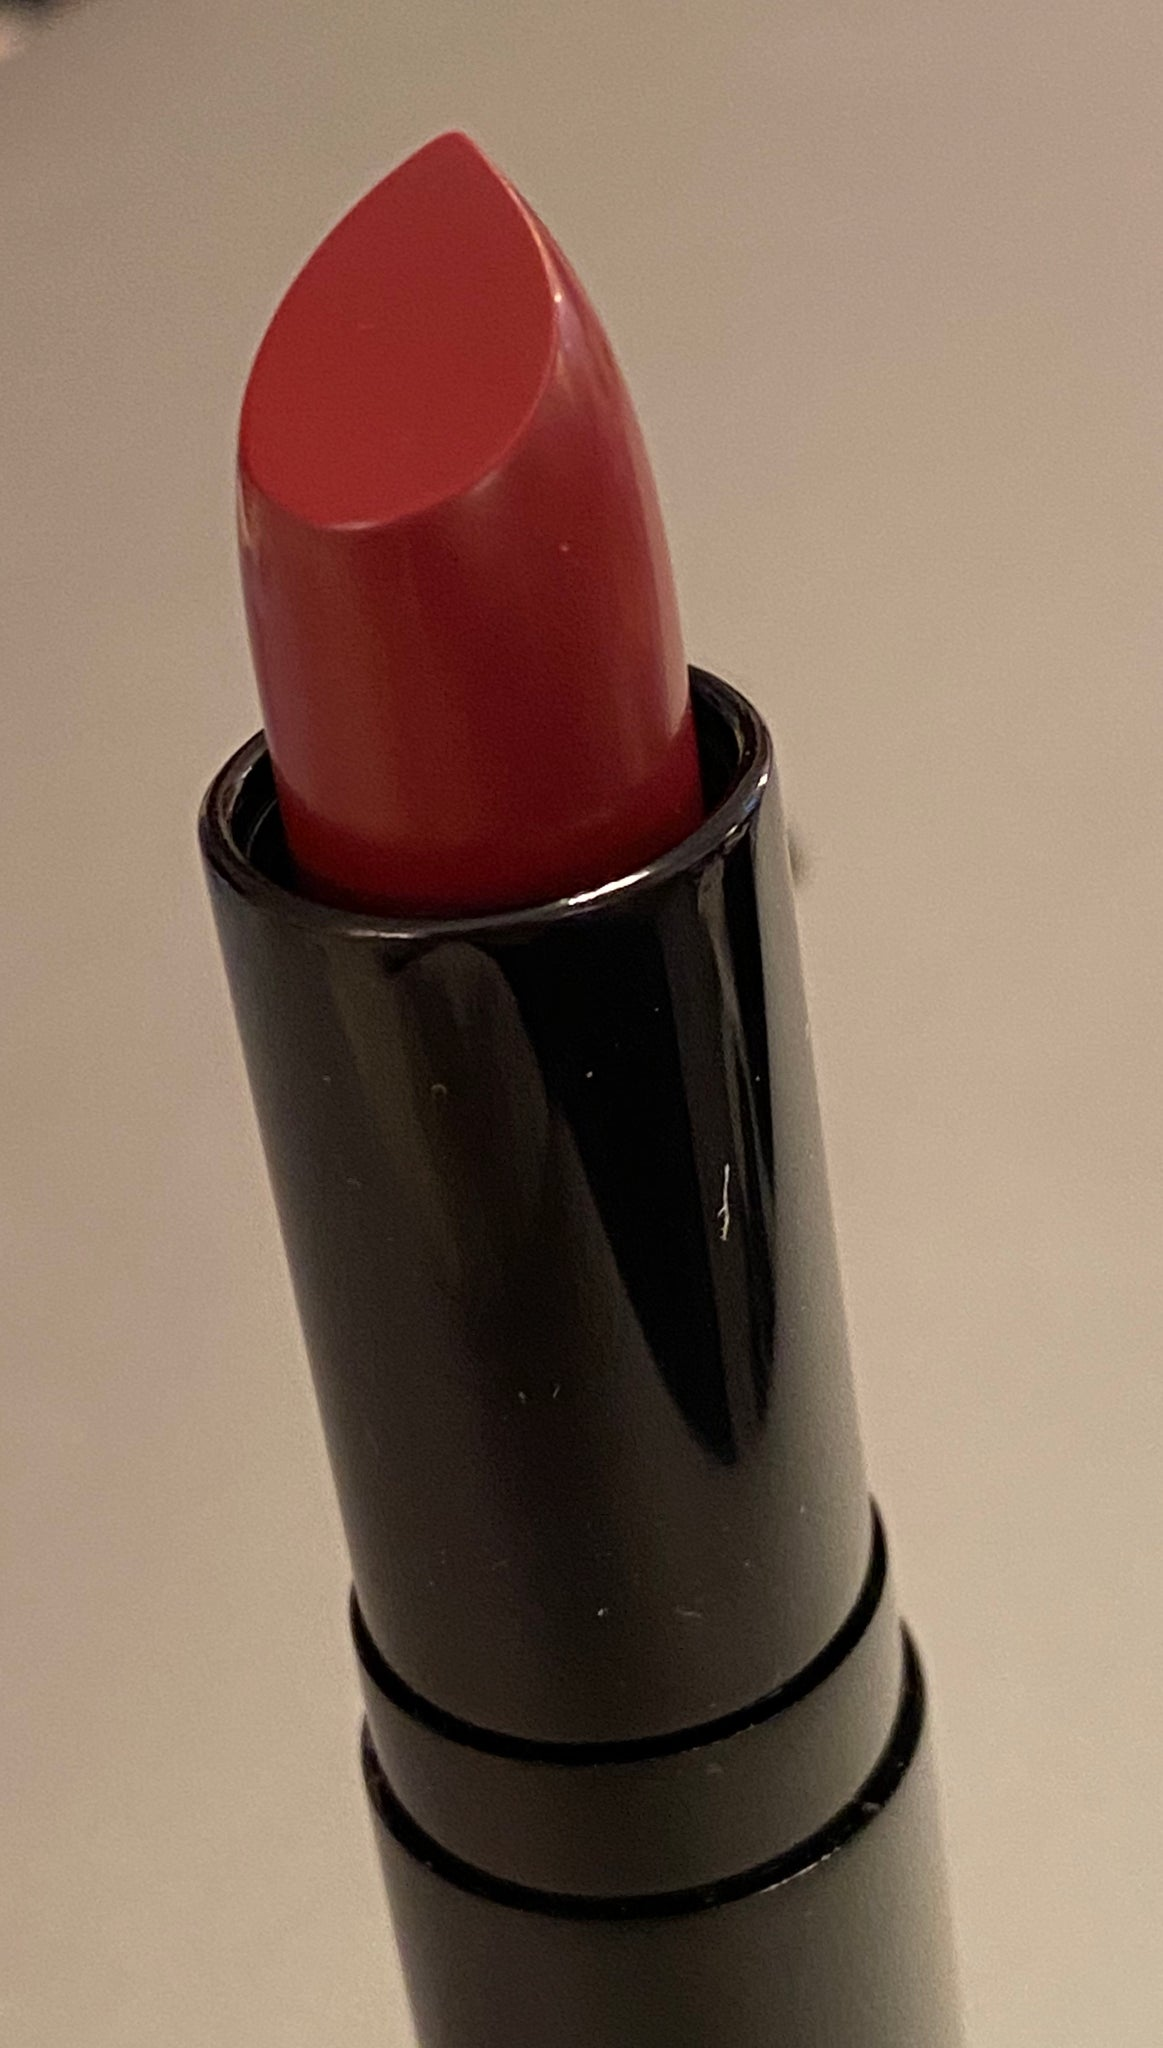 Air Kiss Sheer Shine Lipstick